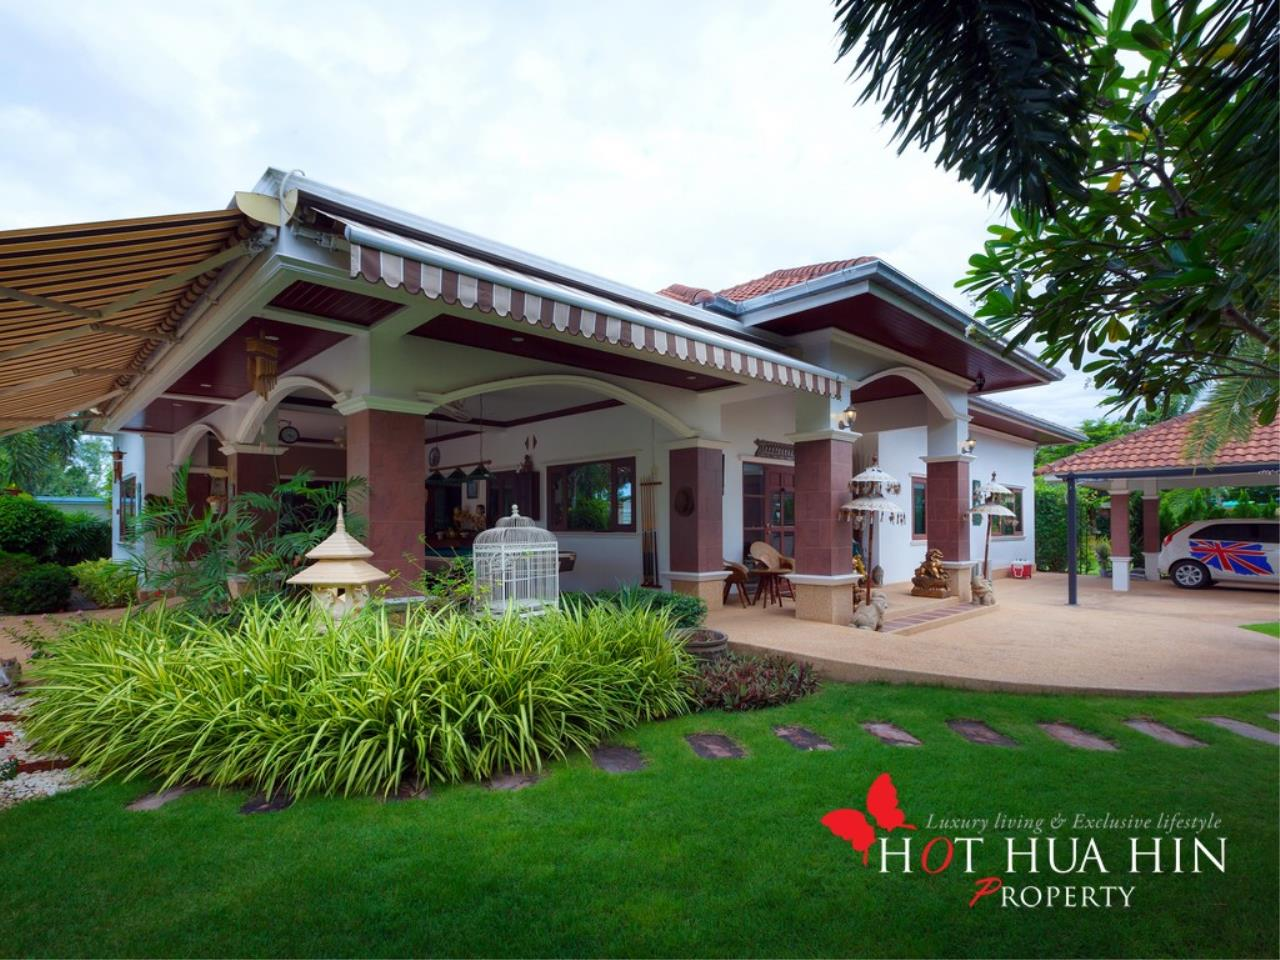 Hot Hua Hin Co. Ltd. Agency's Well Built Home With Stunning Gardens And Two Full Kitchens 2